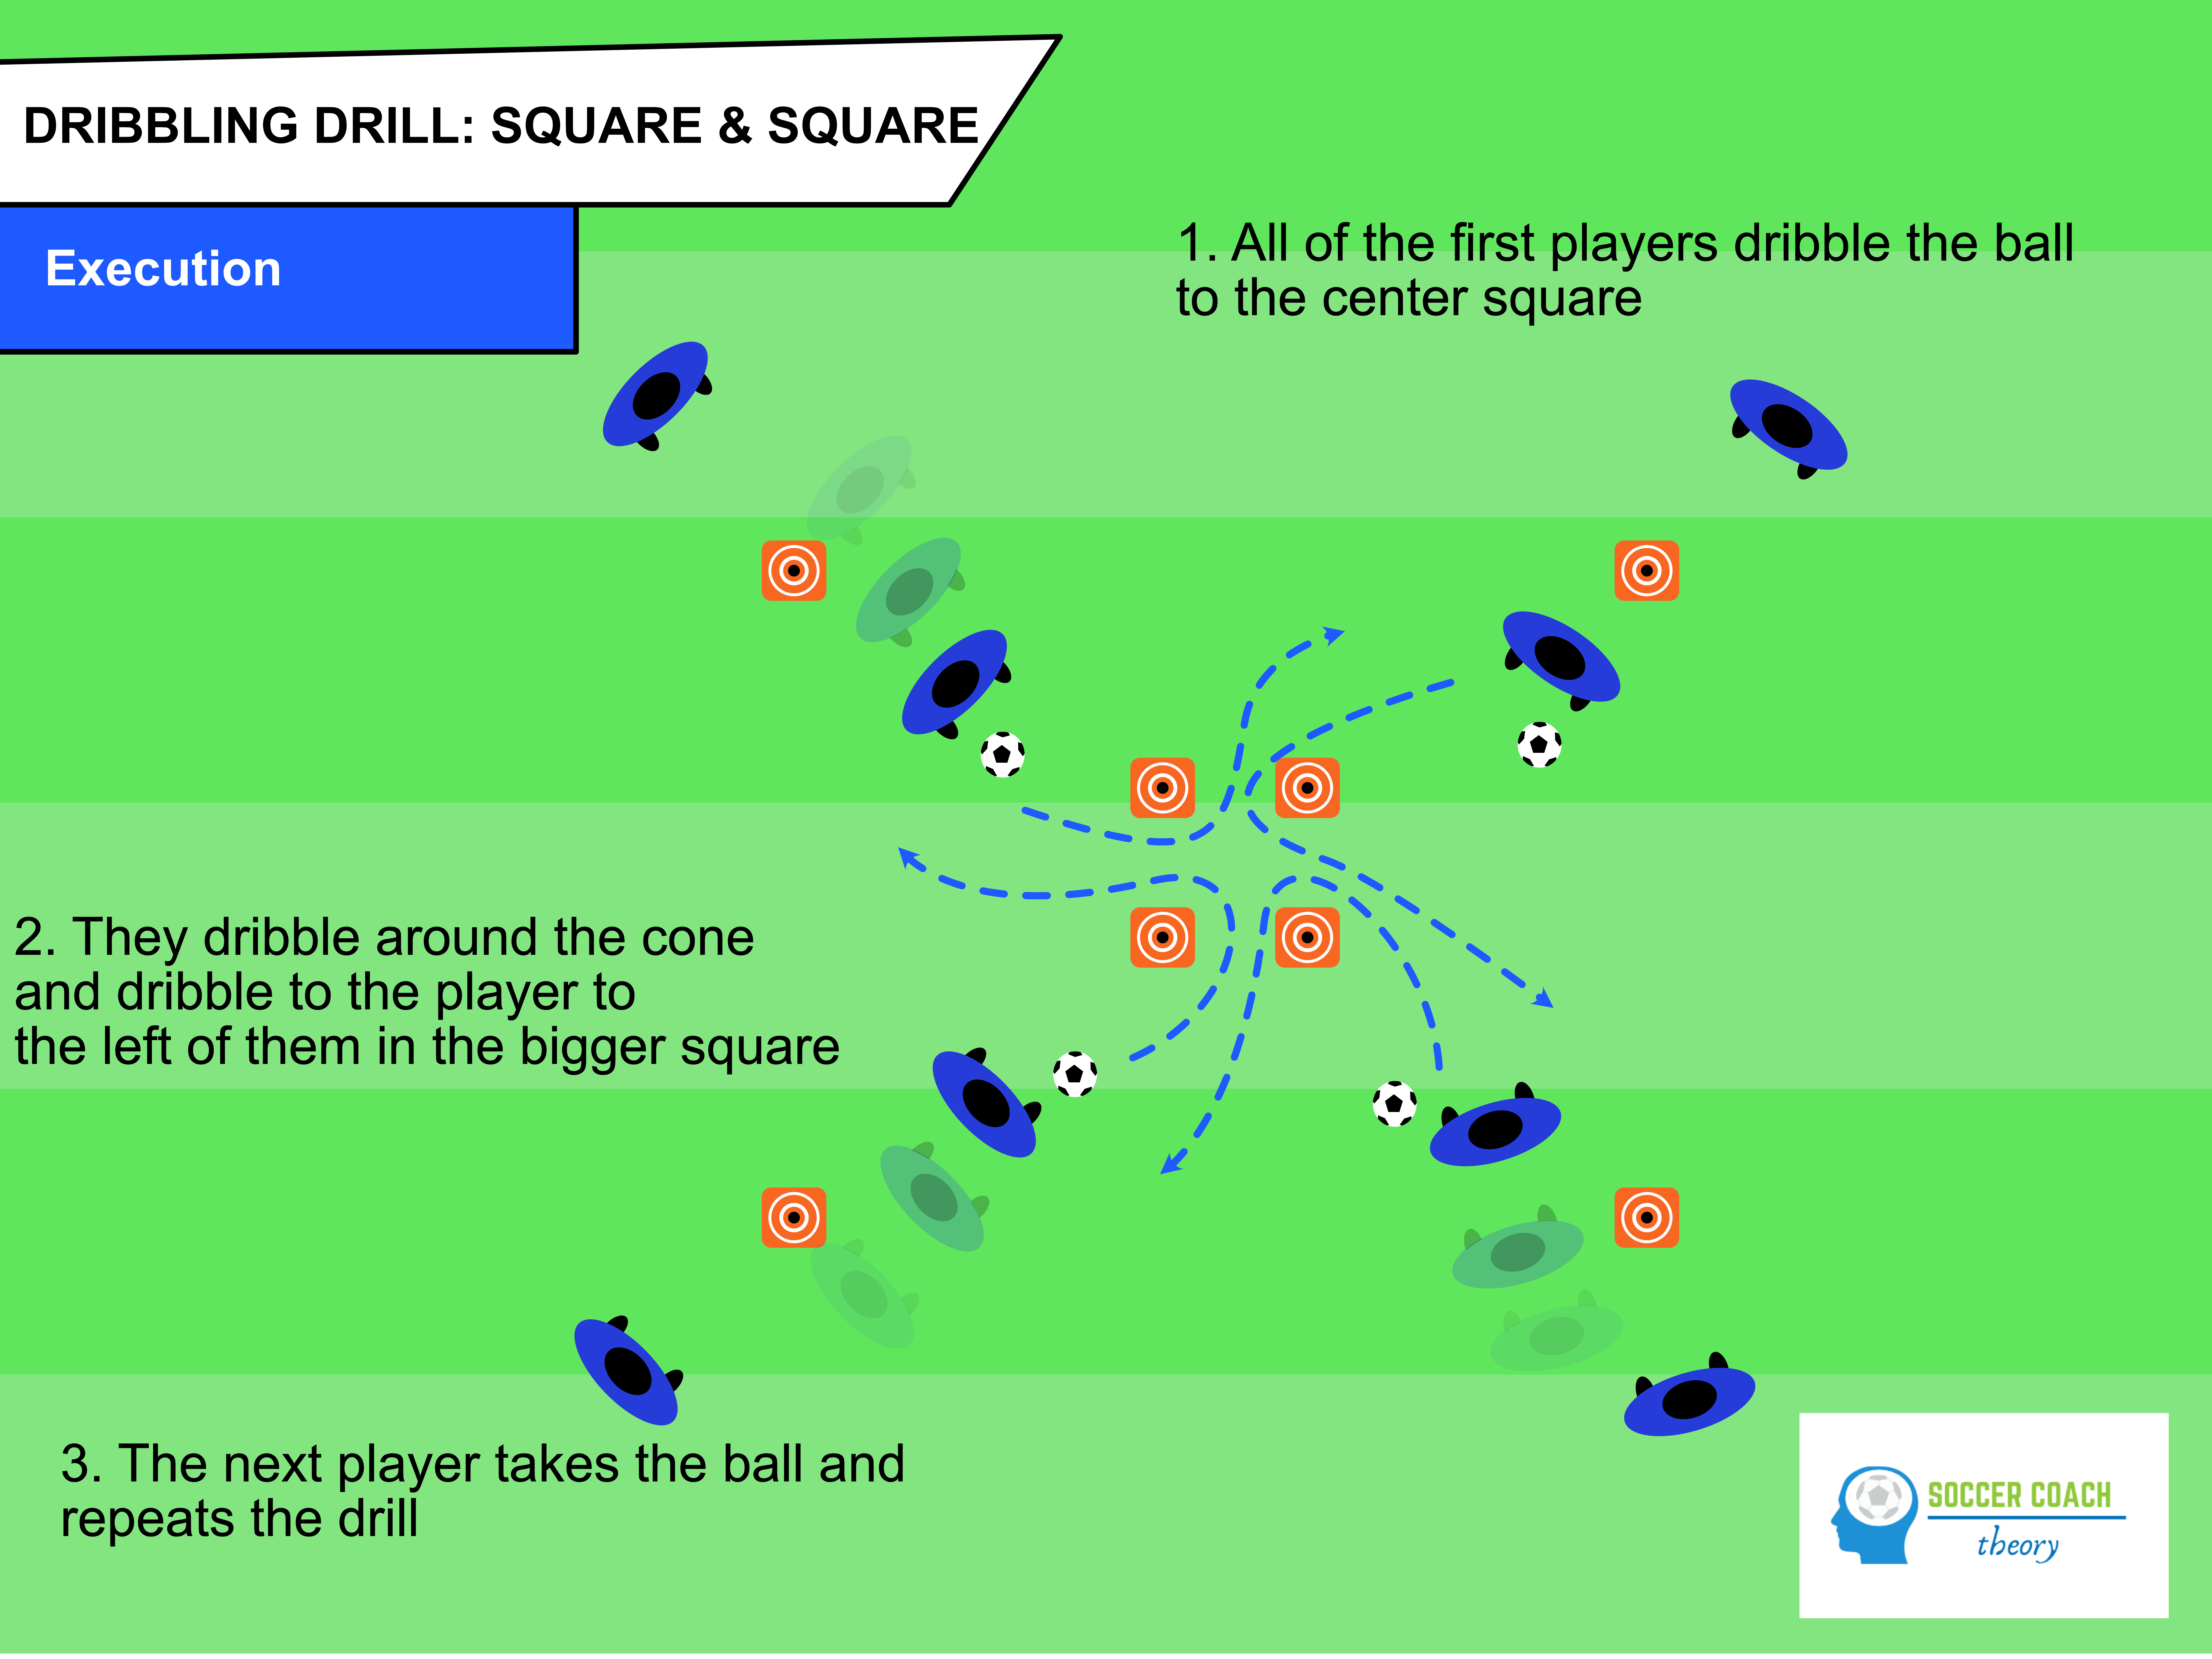 Soccer dribbling drill: square & square - execution